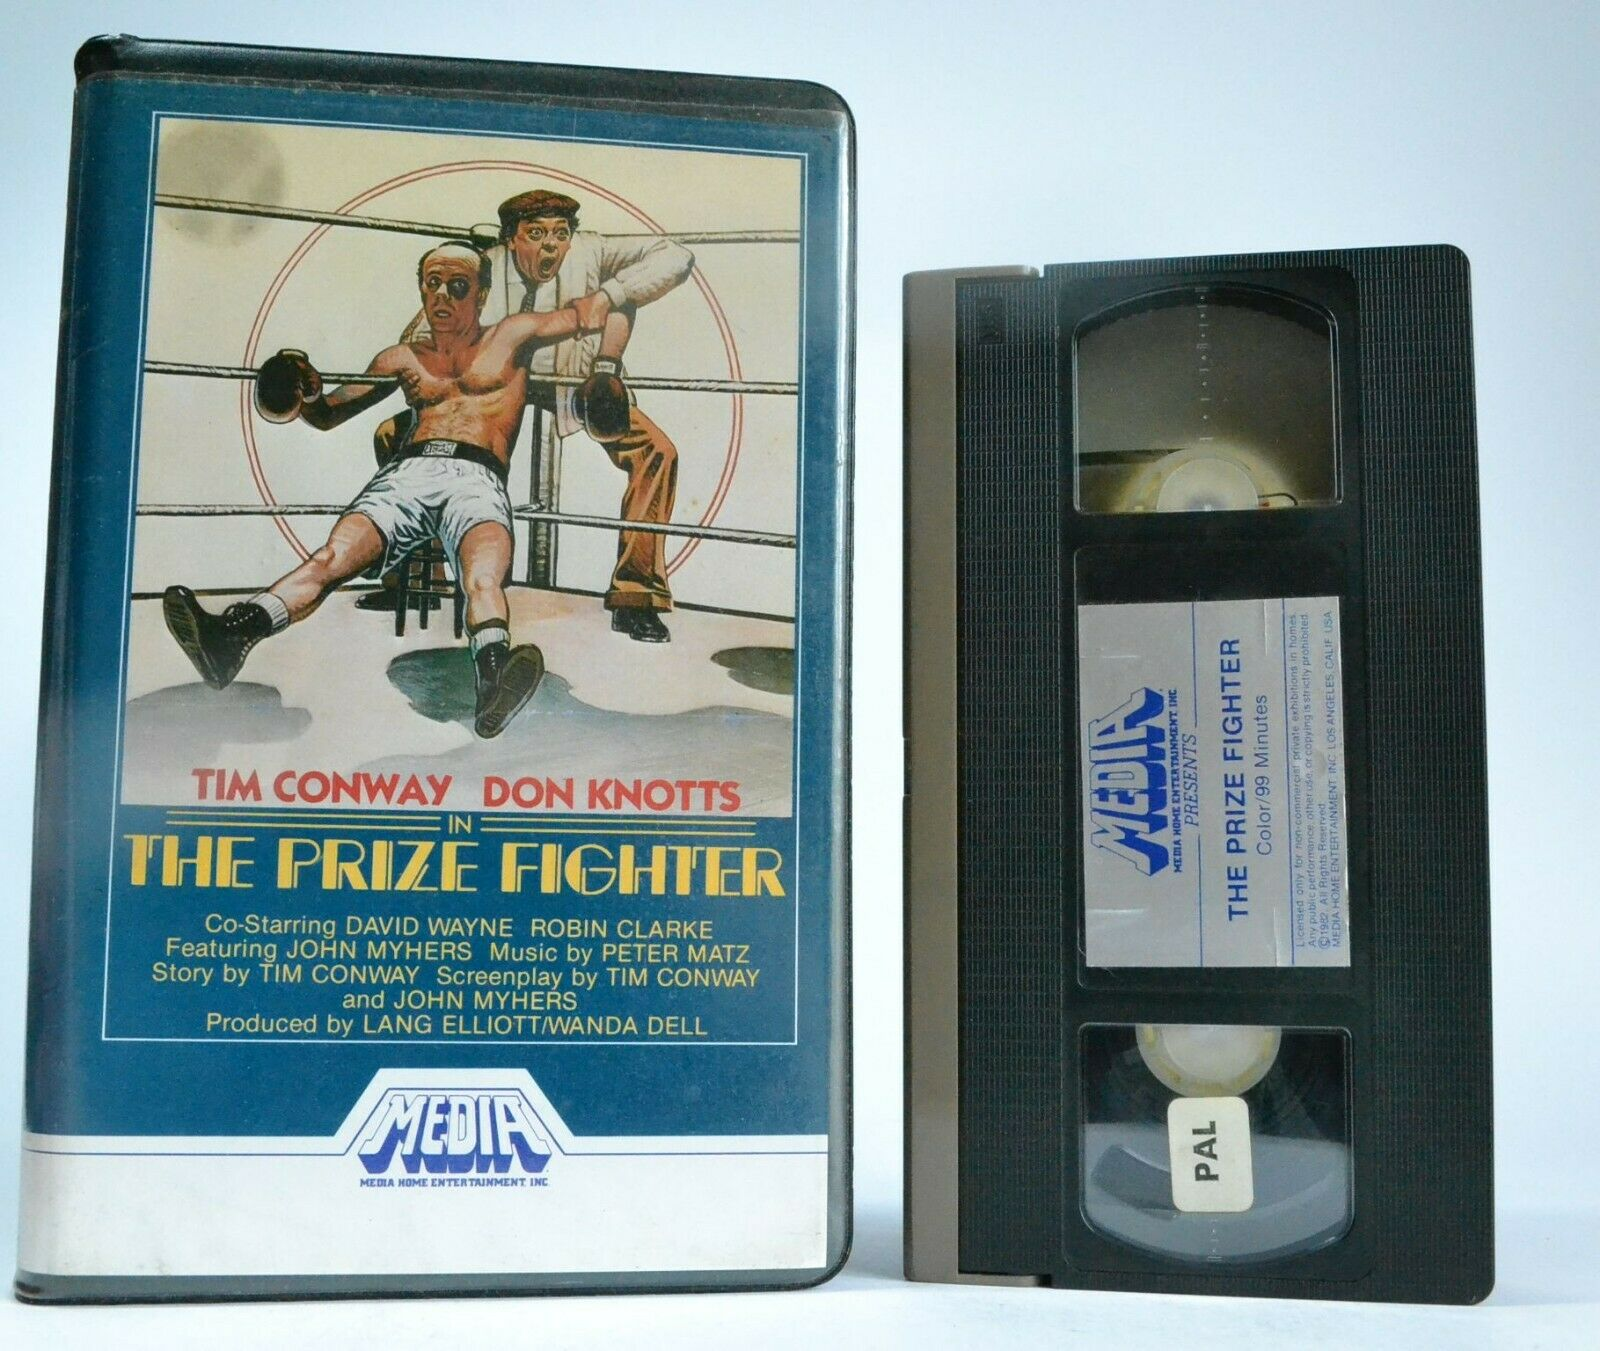 The Prize Fighter (Media) - Big Box - Pre Cert - Ex Rental - Tim Conway - VHS